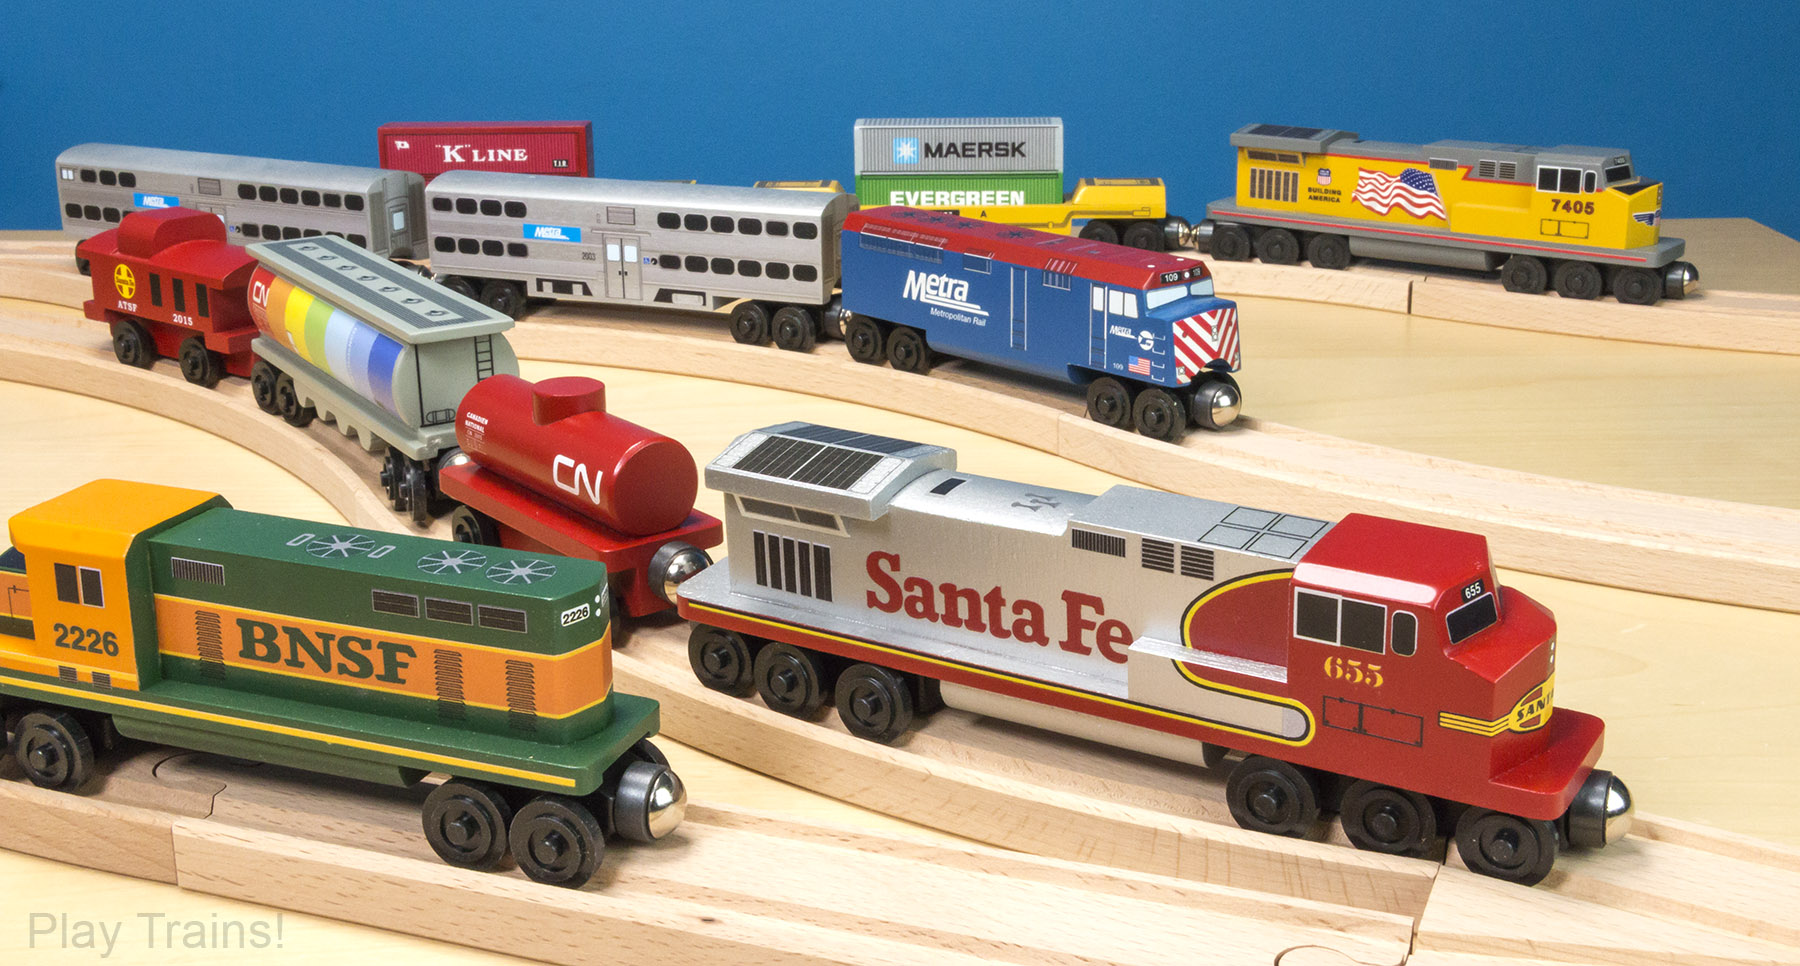 Whittle Shortline Railroad: realistic wooden trains